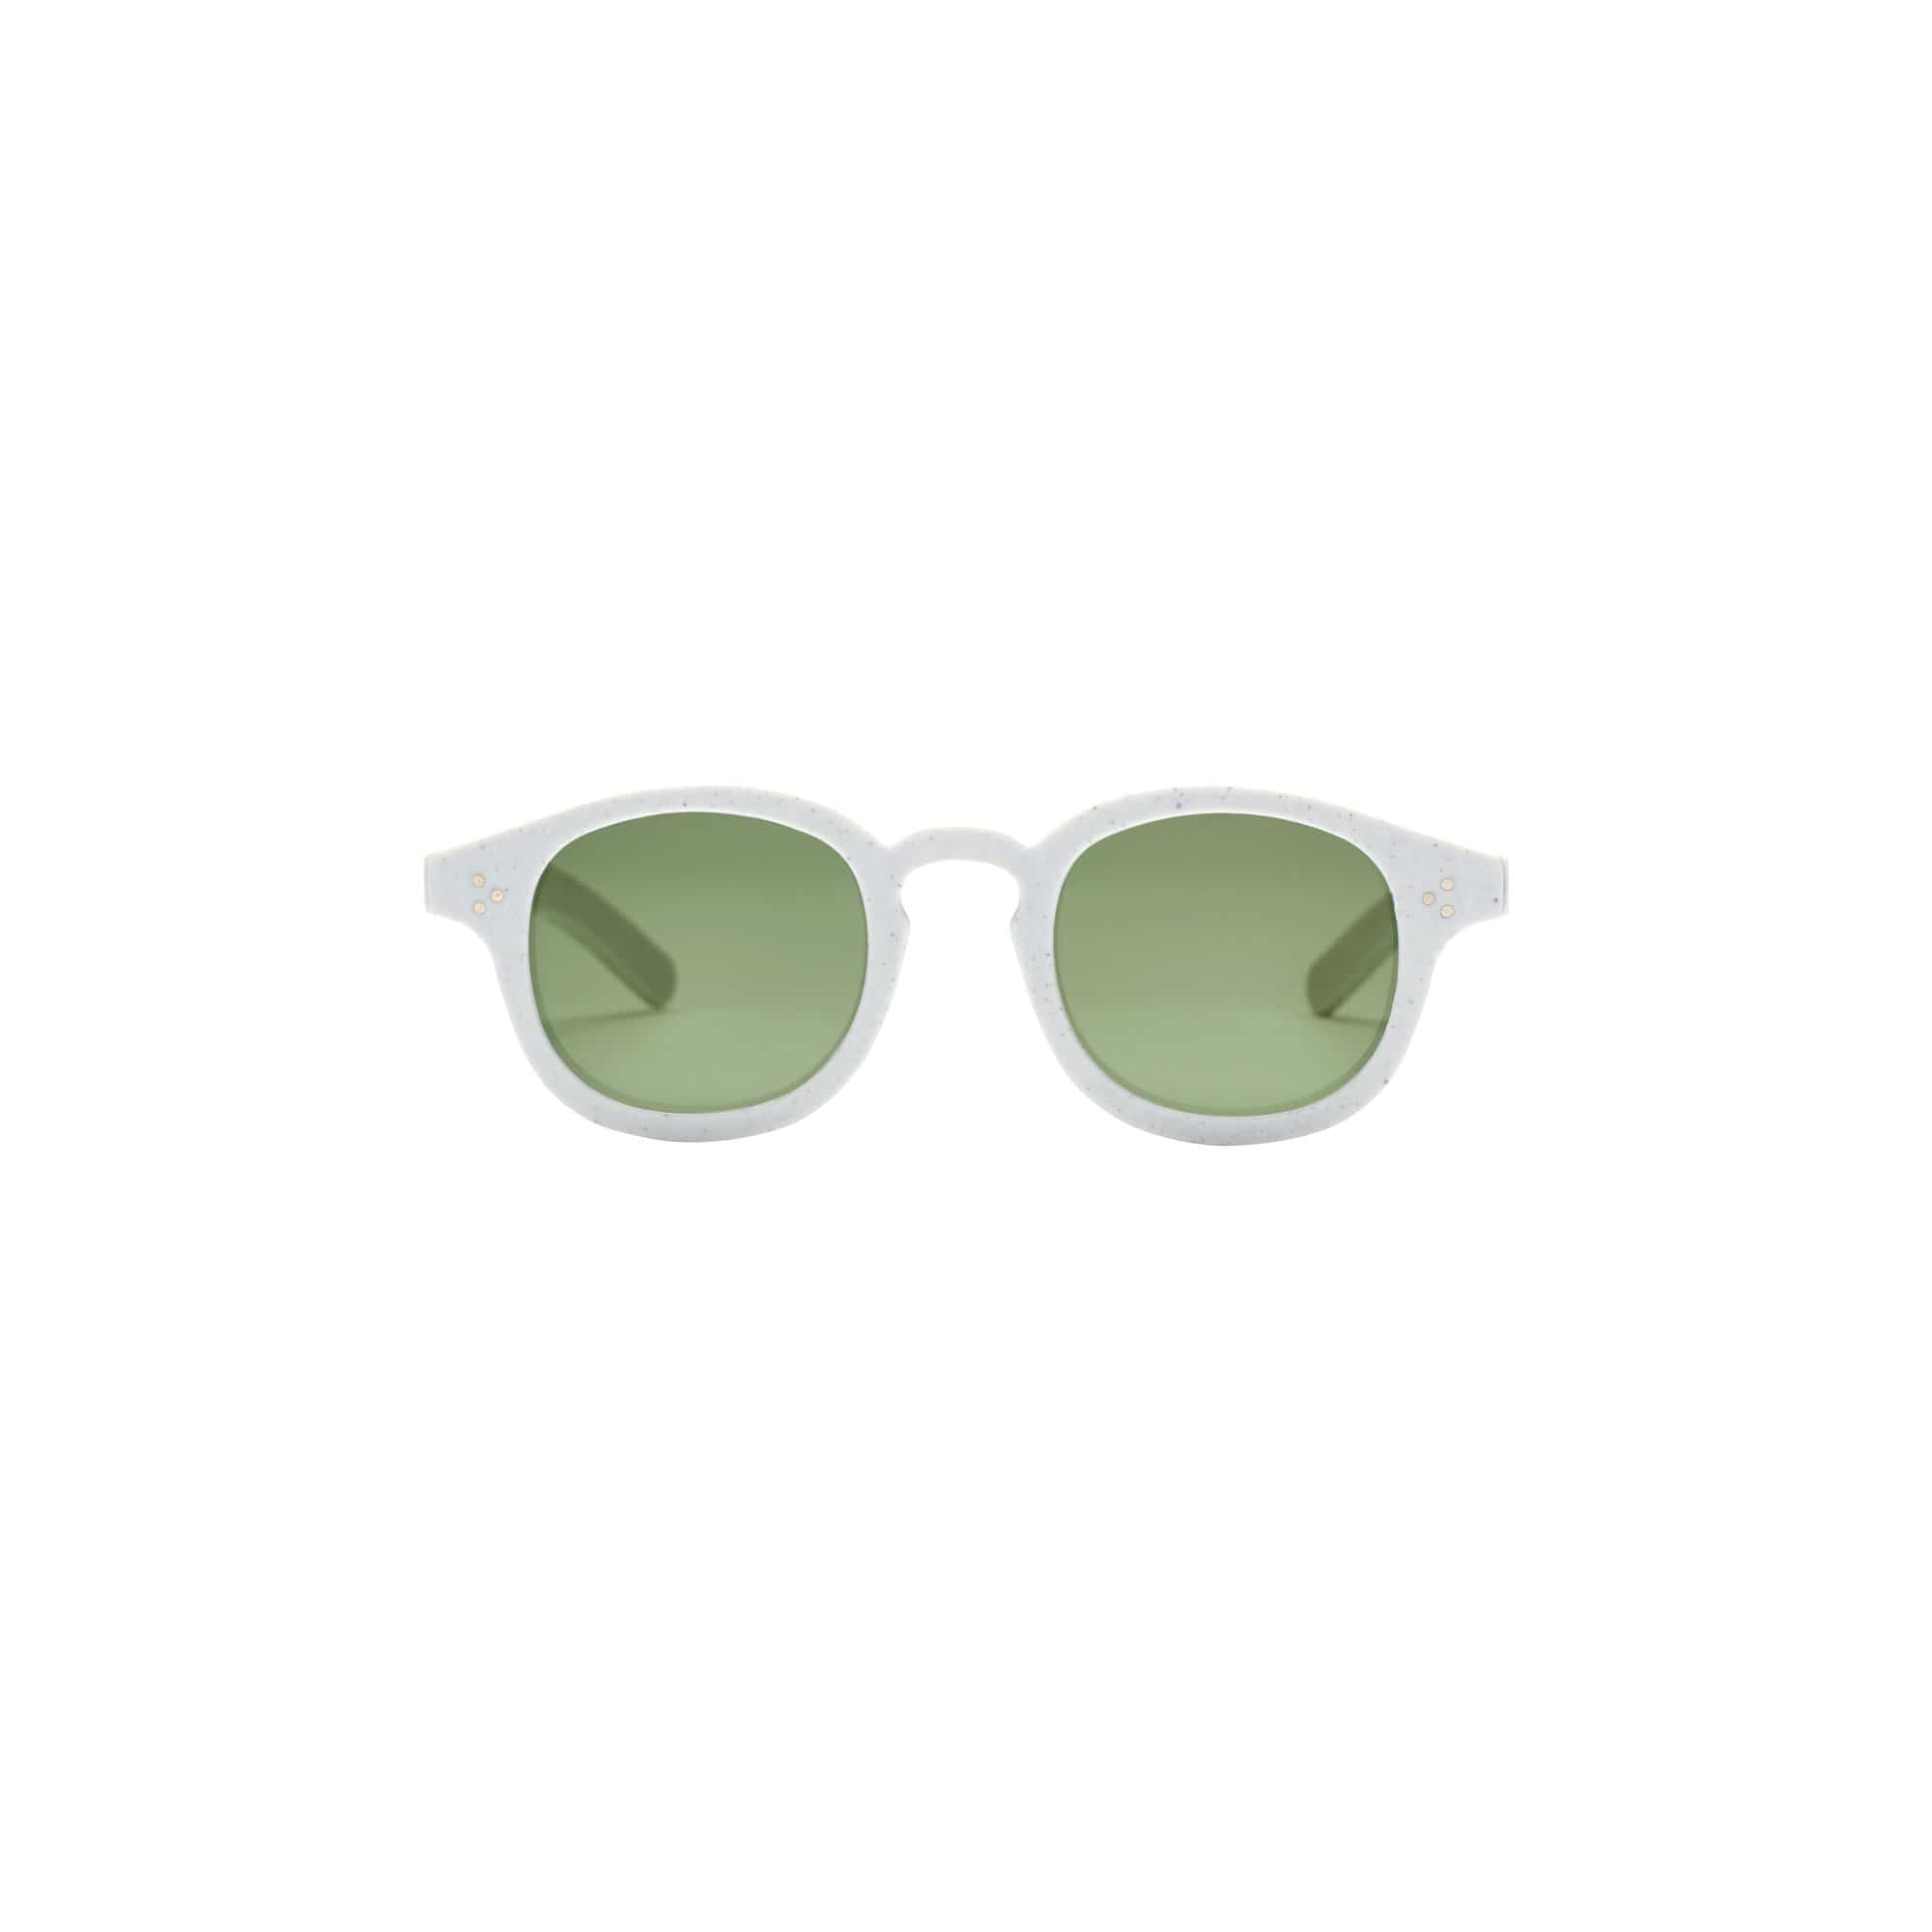 Genusee Sunglasses + Eyewear Roeper Cookies n' Cream + G15 Sunglasses